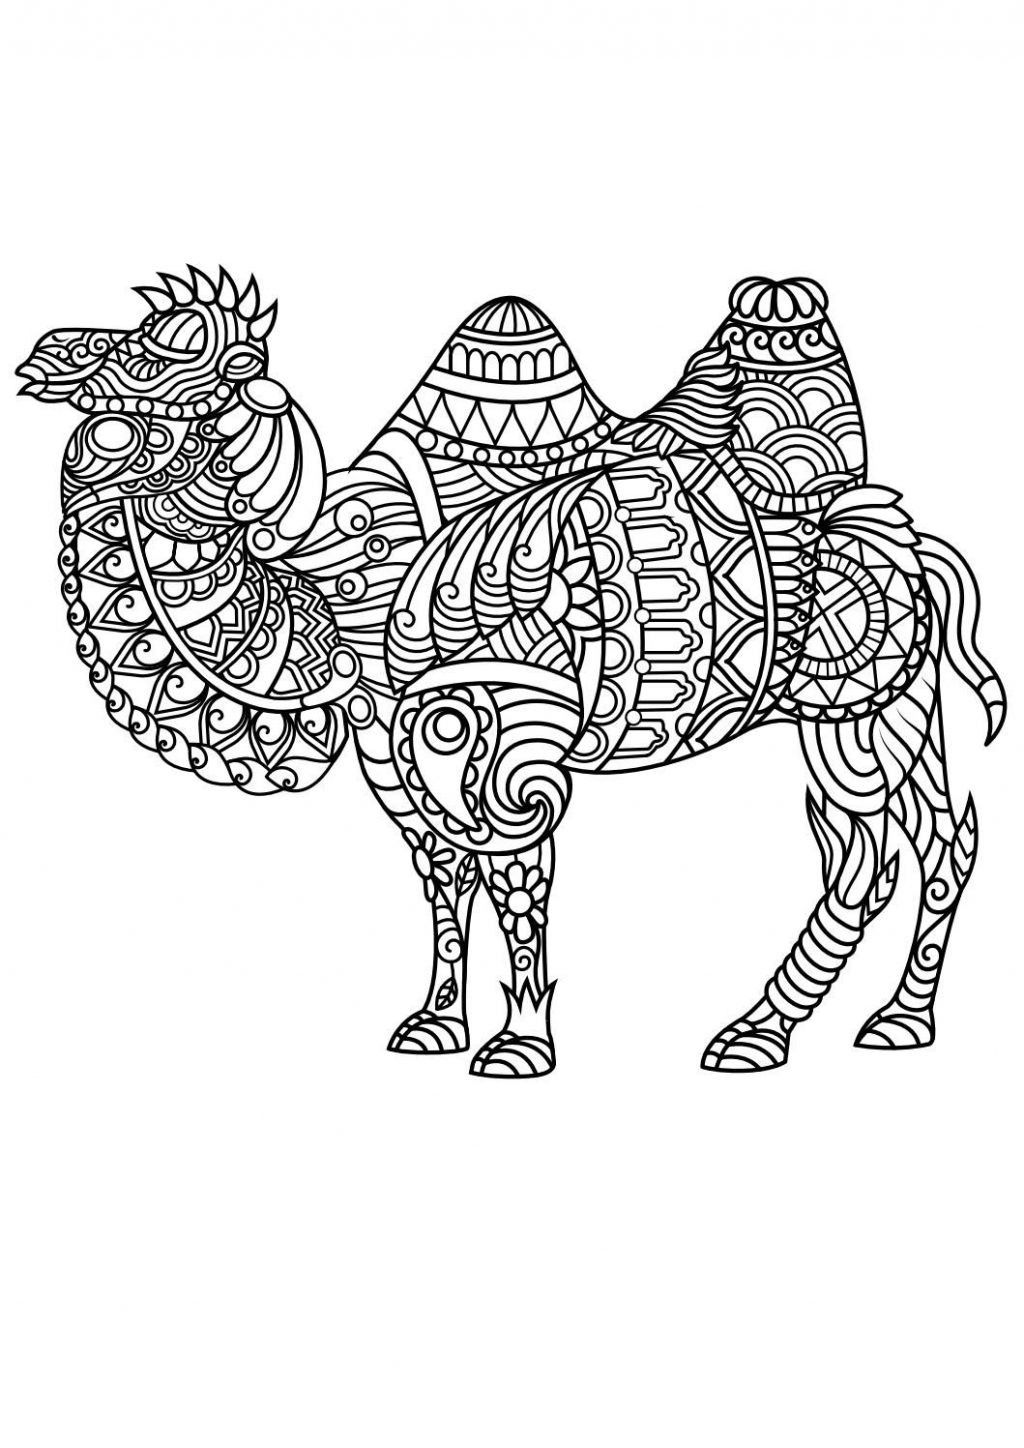 Animal Mandala Coloring Pages Animal Mandala Coloring